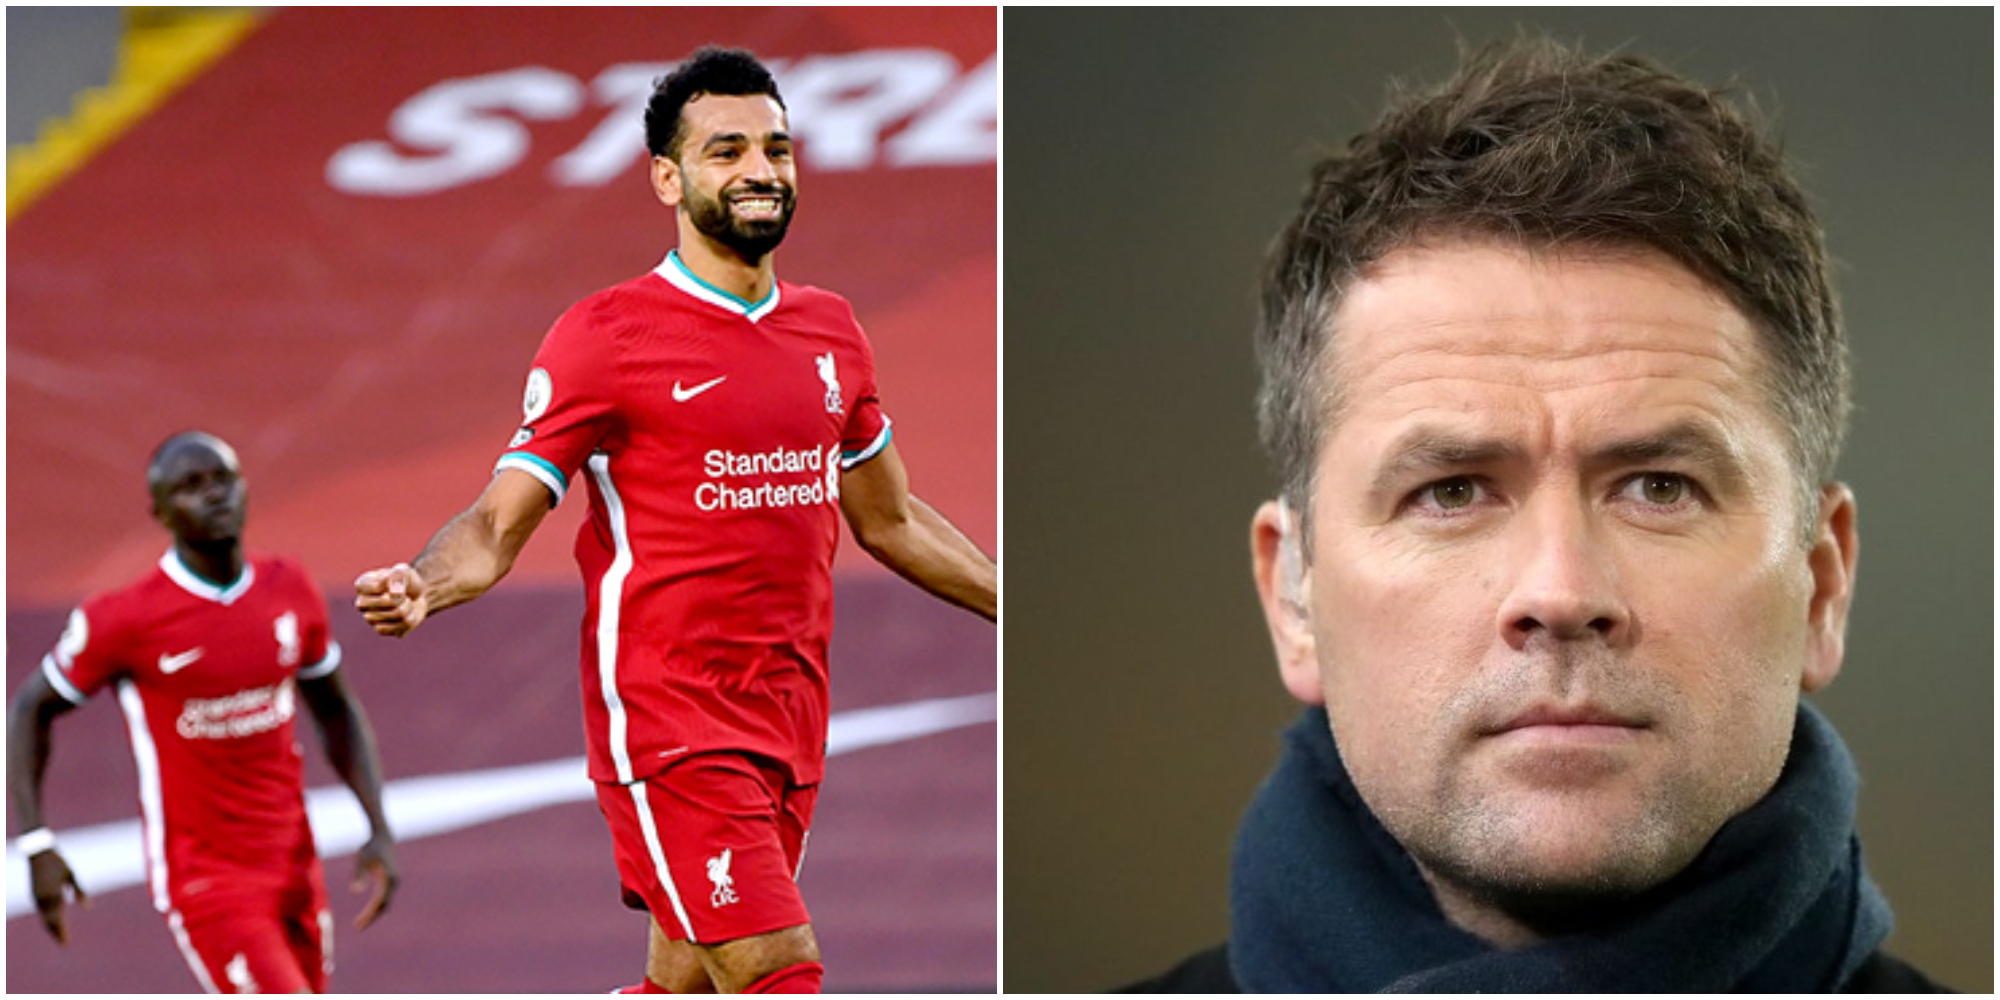 Owen suggests Mane didn't go to ground to stop Salah from getting another penalty